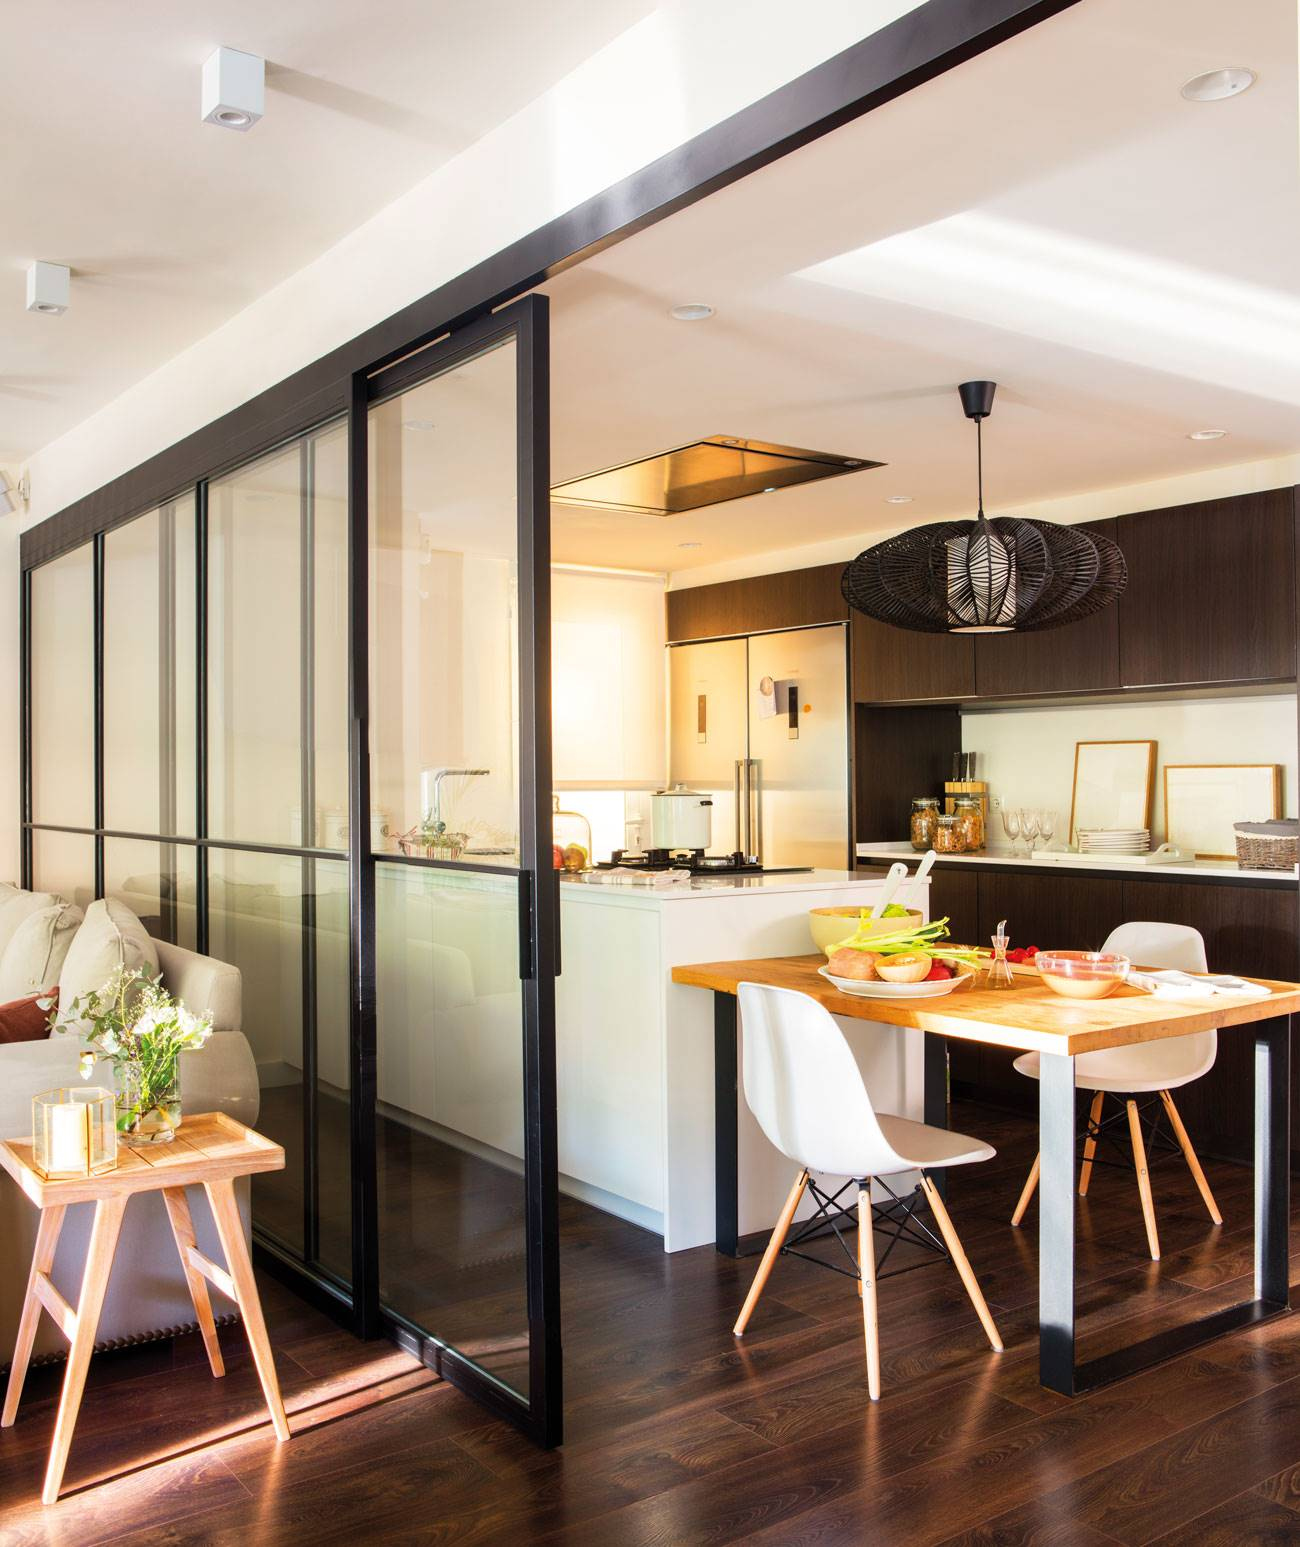 kitchen-separated-from-living-room-with-sliding-door-black-frames-to-match-with-kitchen-furniture-and-parquet 00444959. Dark and sophisticated